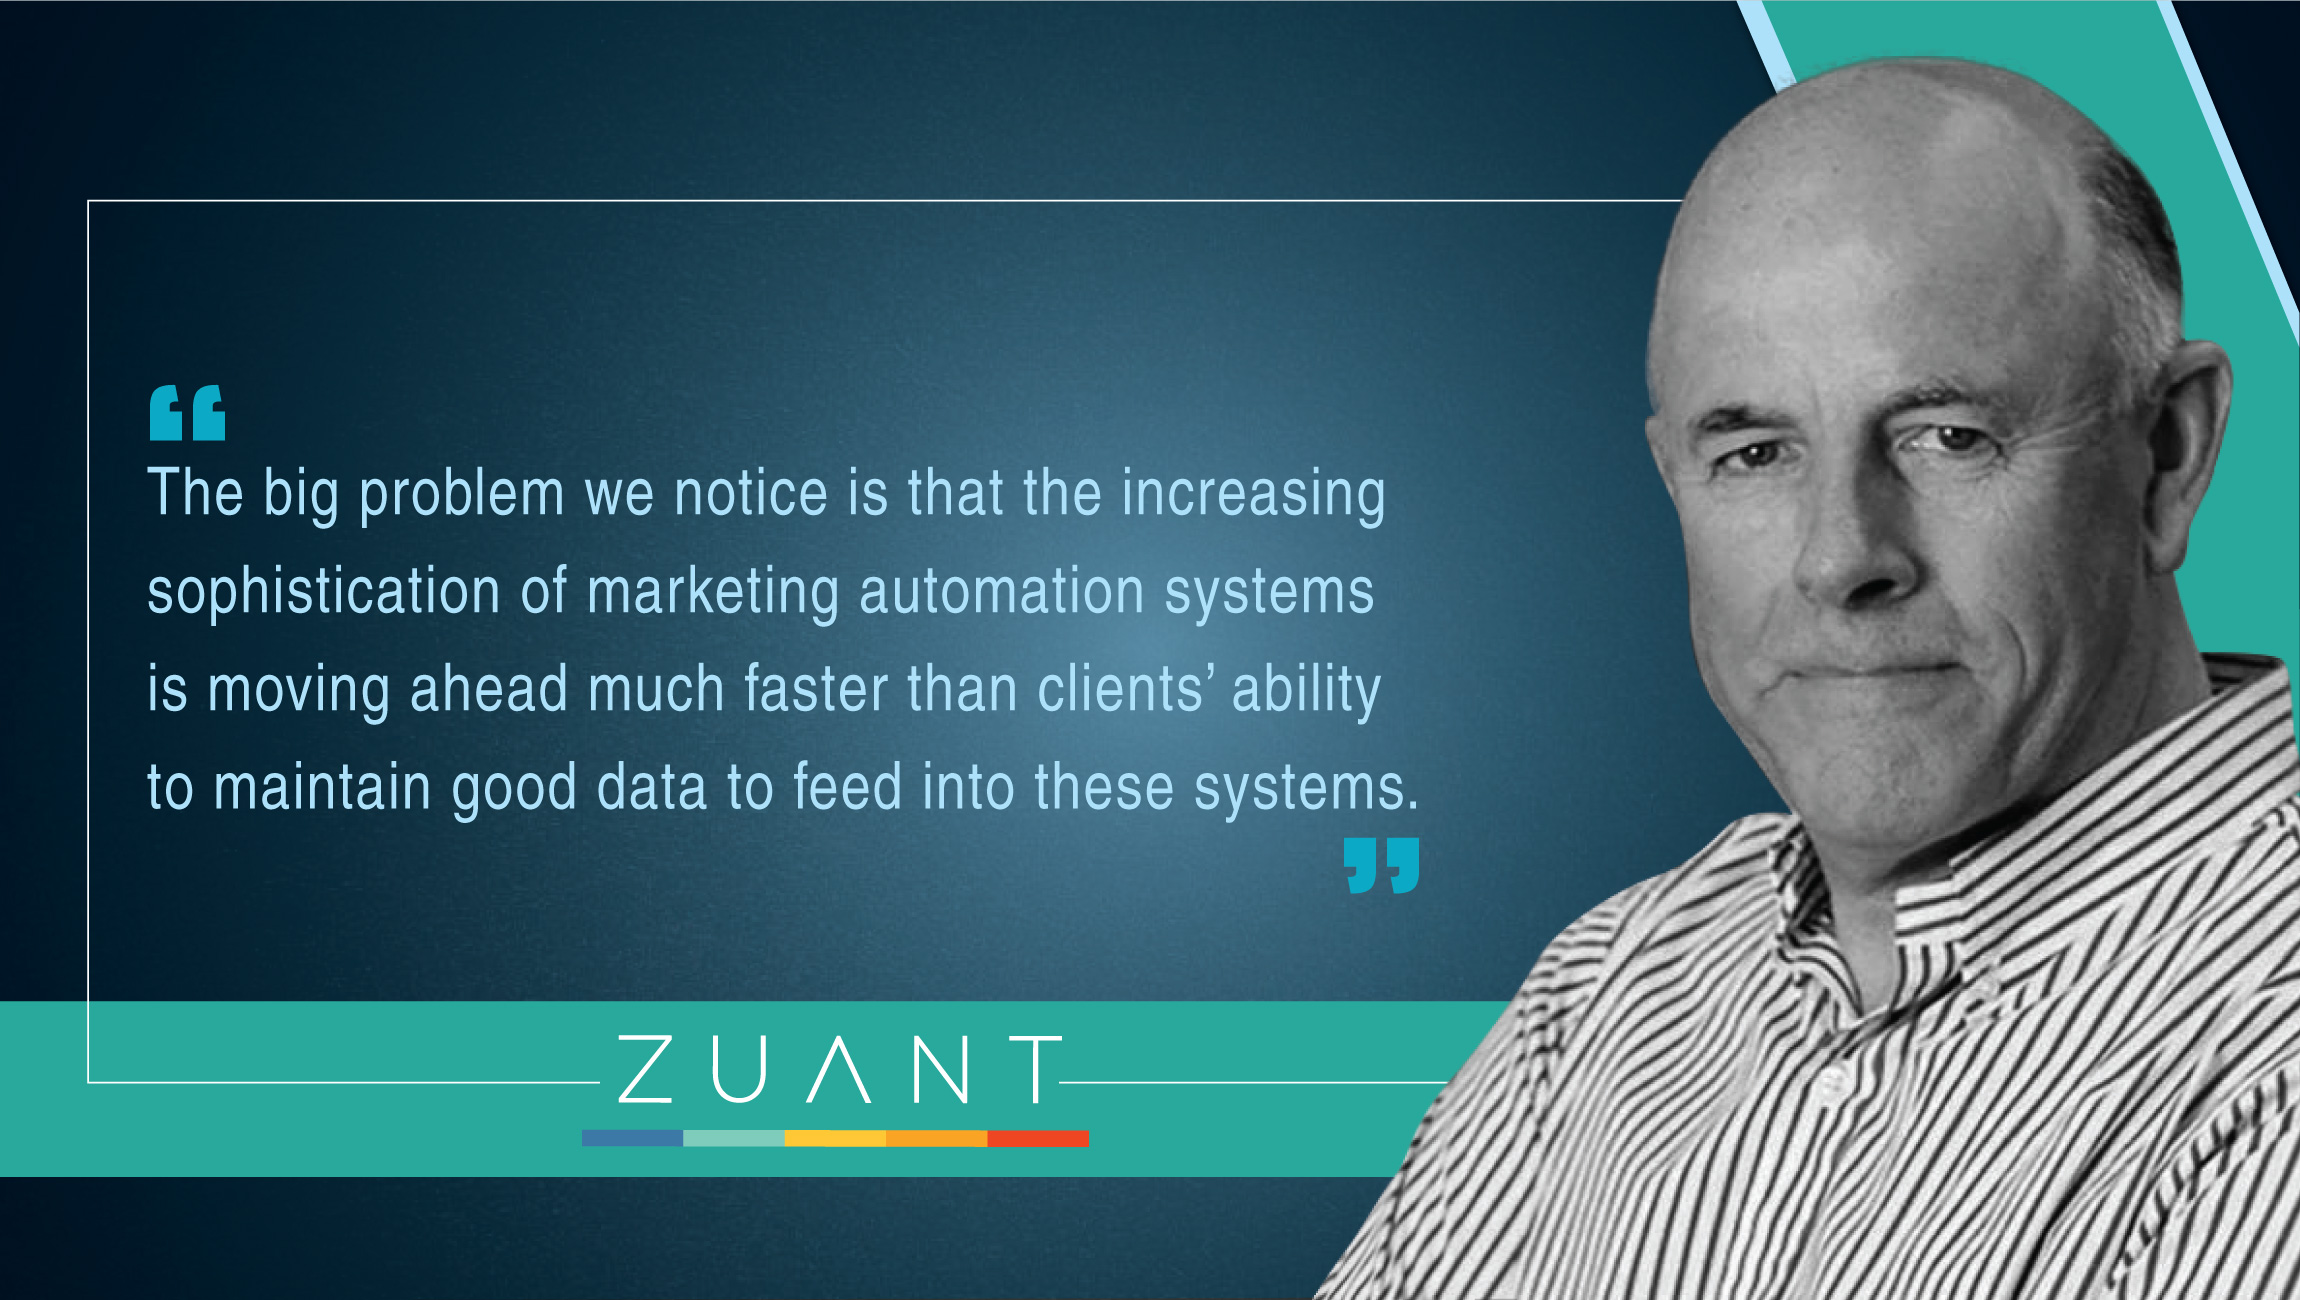 Peter Gillett, CEO, Zuant